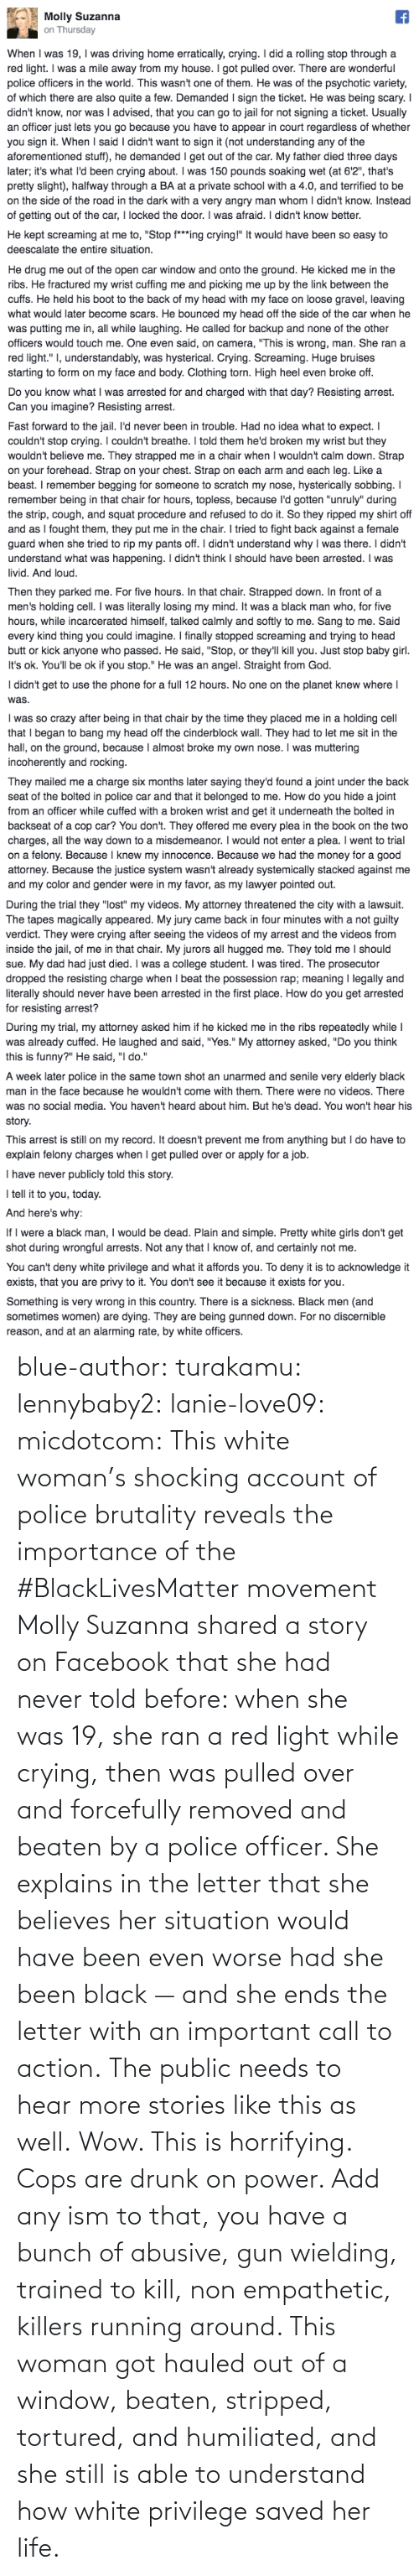 Shared: blue-author: turakamu:  lennybaby2:  lanie-love09:  micdotcom:  This white woman's shocking account of police brutality reveals the importance of the #BlackLivesMatter movement Molly Suzanna shared a story on Facebook that she had never told before: when she was 19, she ran a red light while crying, then was pulled over and forcefully removed and beaten by a police officer. She explains in the letter that she believes her situation would have been even worse had she been black — and she ends the letter with an important call to action.  The public needs to hear more stories like this as well.  Wow. This is horrifying.  Cops are drunk on power. Add any ism to that, you have a bunch of abusive, gun wielding, trained to kill, non empathetic, killers running around.    This woman got hauled out of a window, beaten, stripped, tortured, and humiliated, and she still is able to understand how white privilege saved her life.